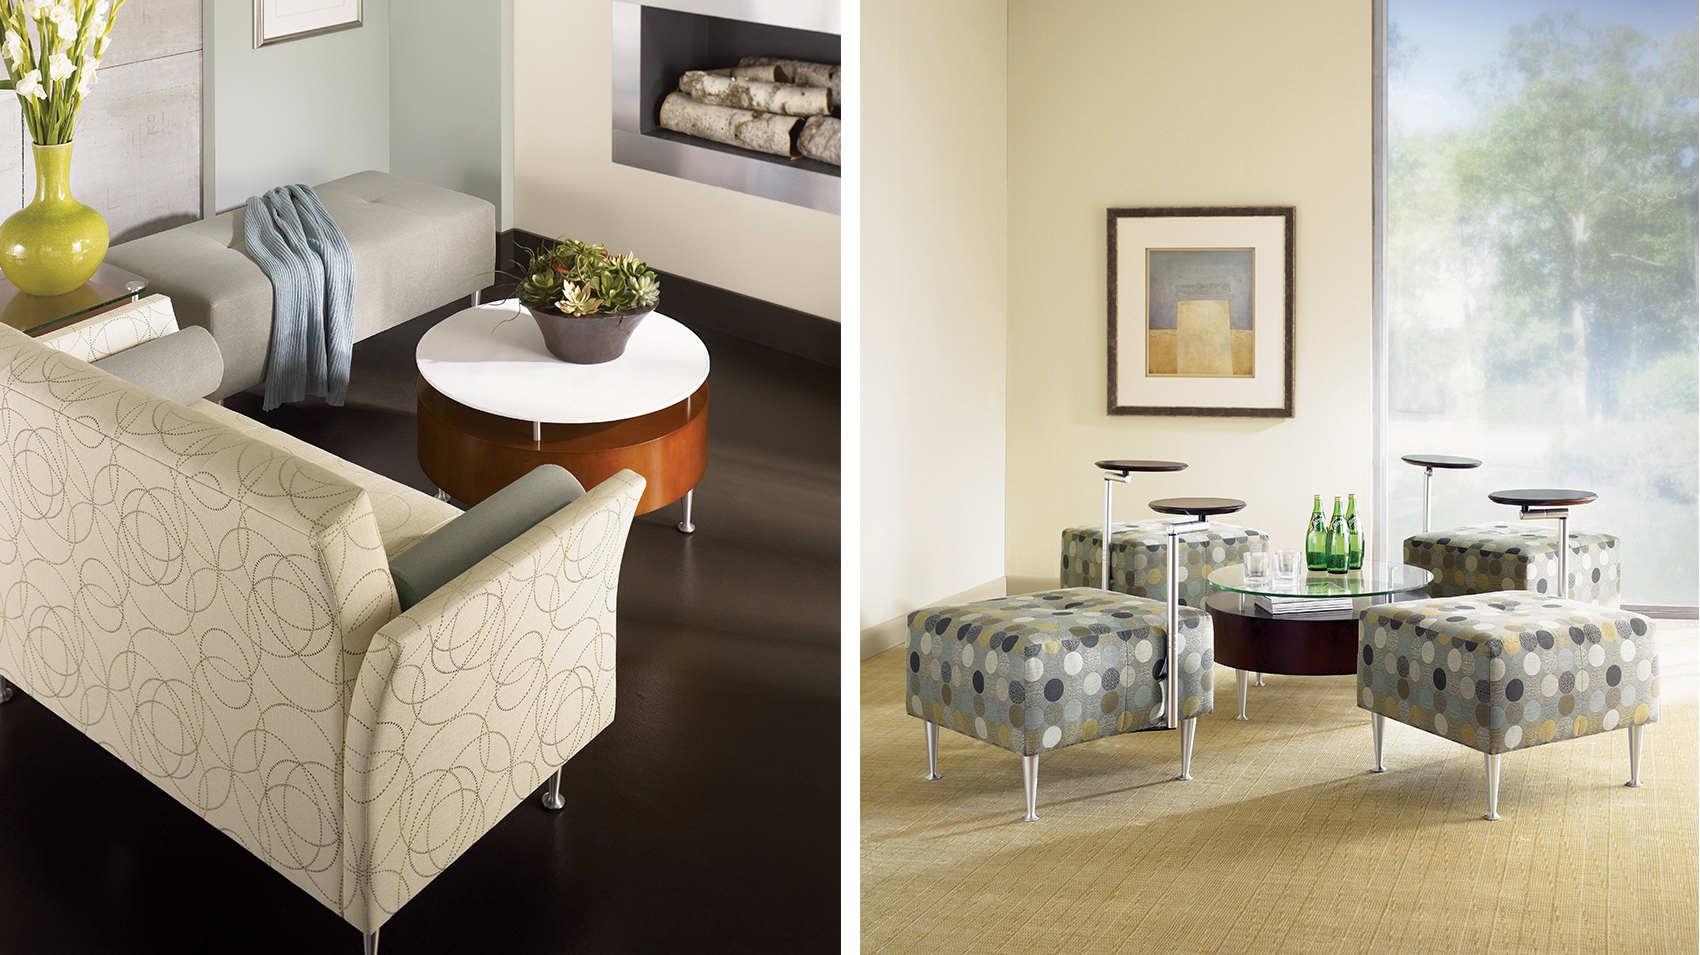 Retrospect Looks Better Than Ever! Fresh, Modern, Clean Lines Allow  Specifies To Personalize And Update Space Designs. Optional Arm Designs,  Back Placements ...